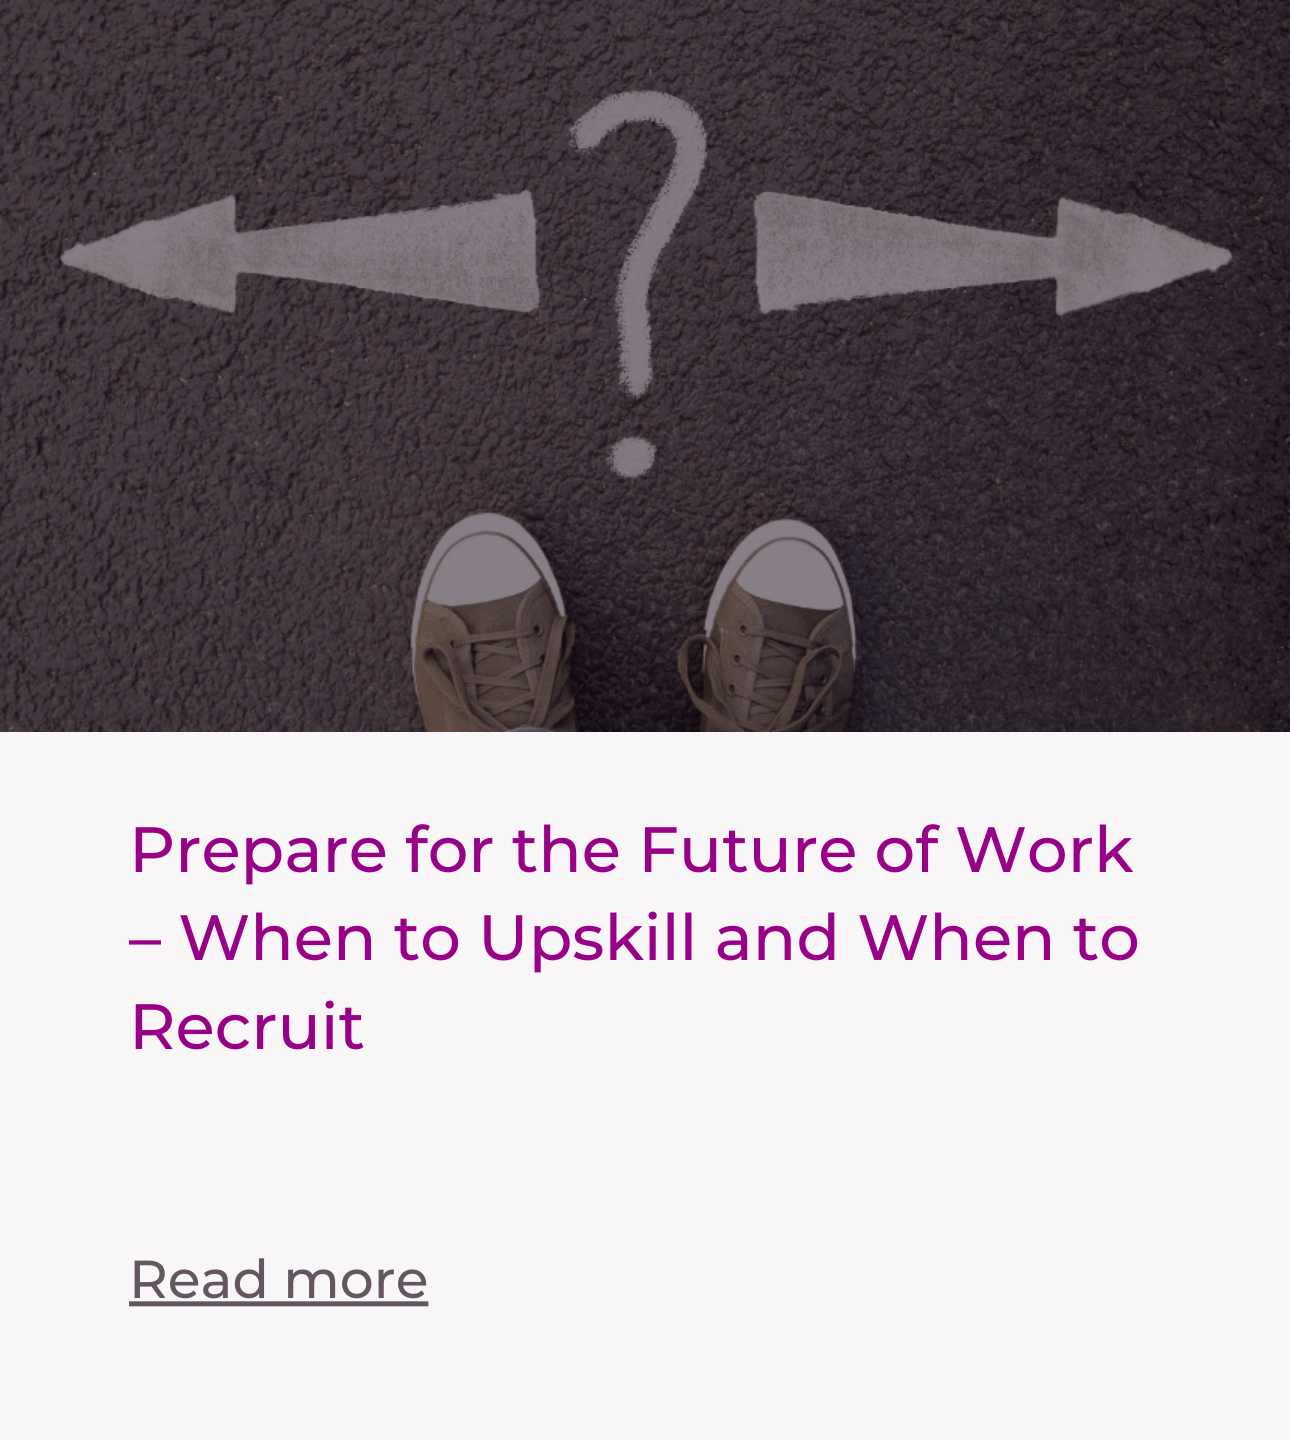 Prepare for the Future of Work – When to Upskill and When to Recruit